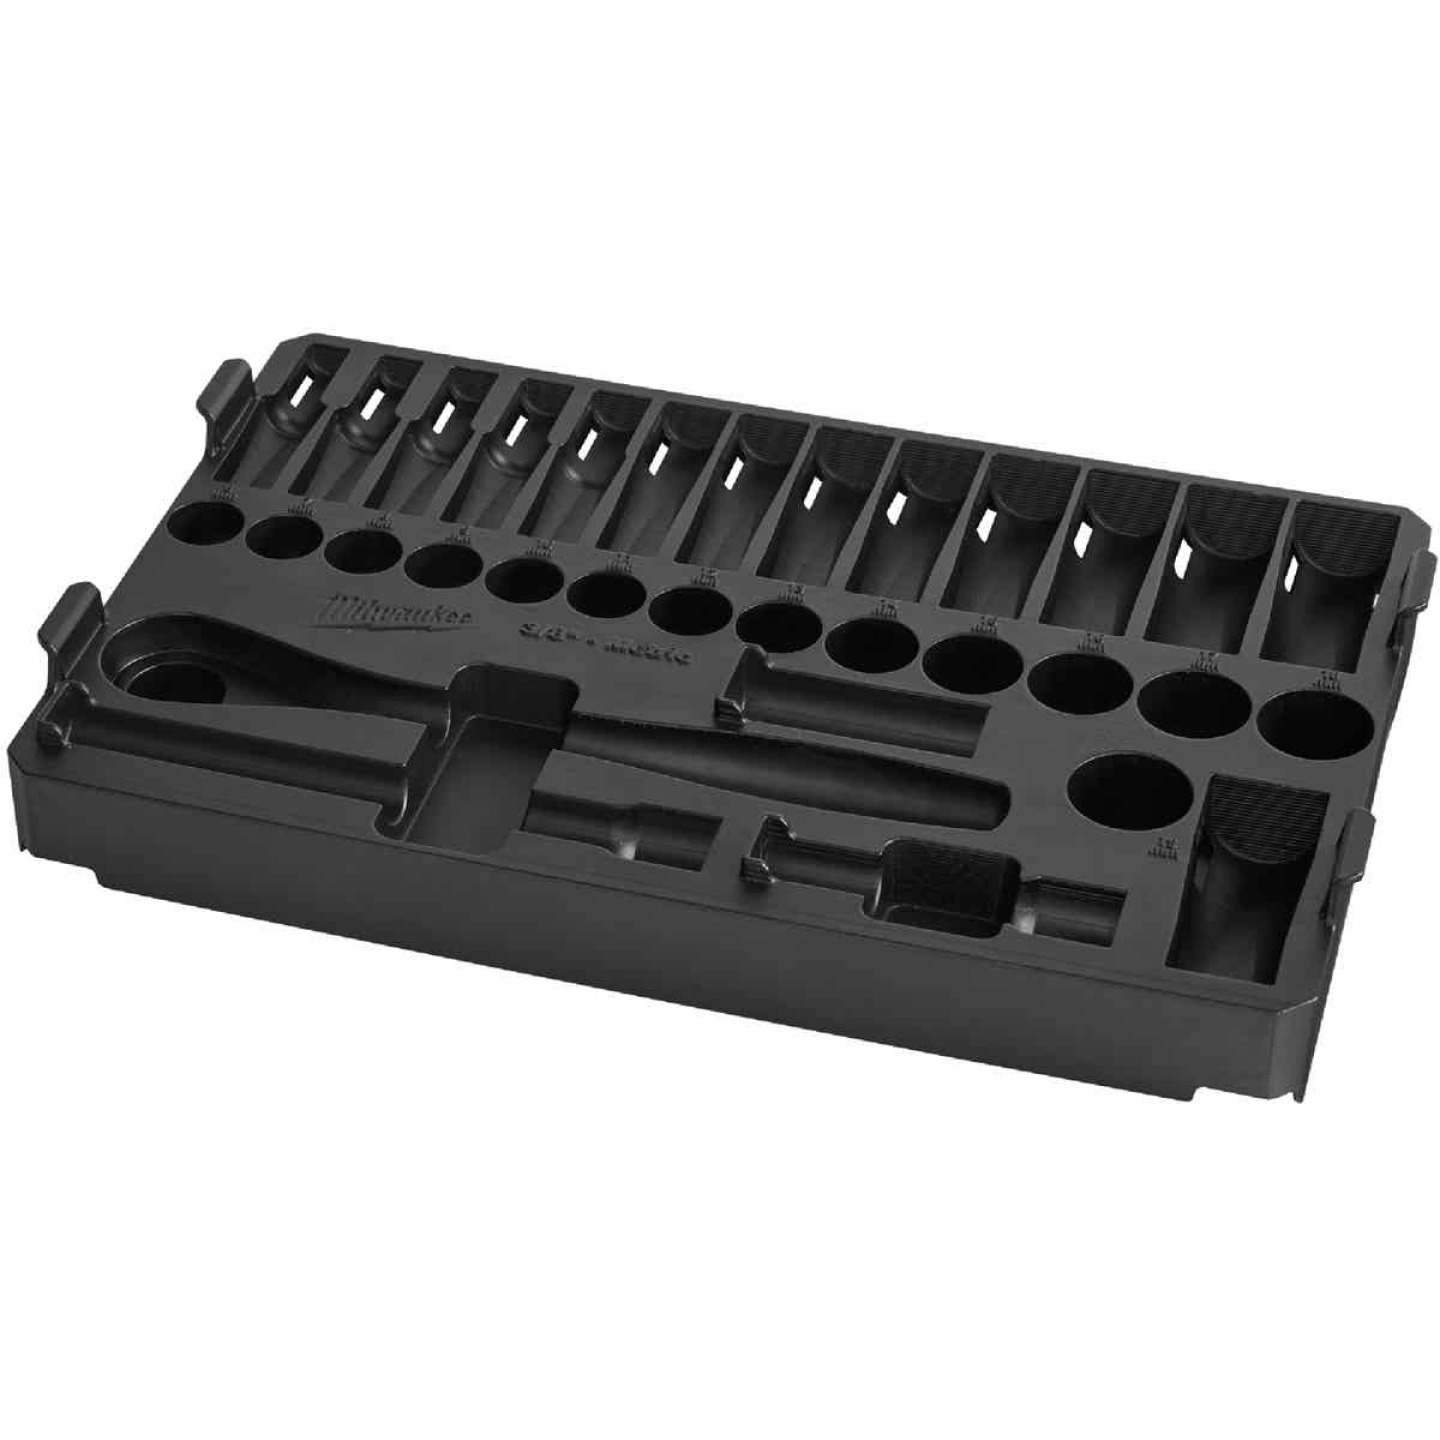 Milwaukee 32-Piece 3/8 In. Drive Metric PACKOUT Tray Ratchet & Socket Holder Image 1